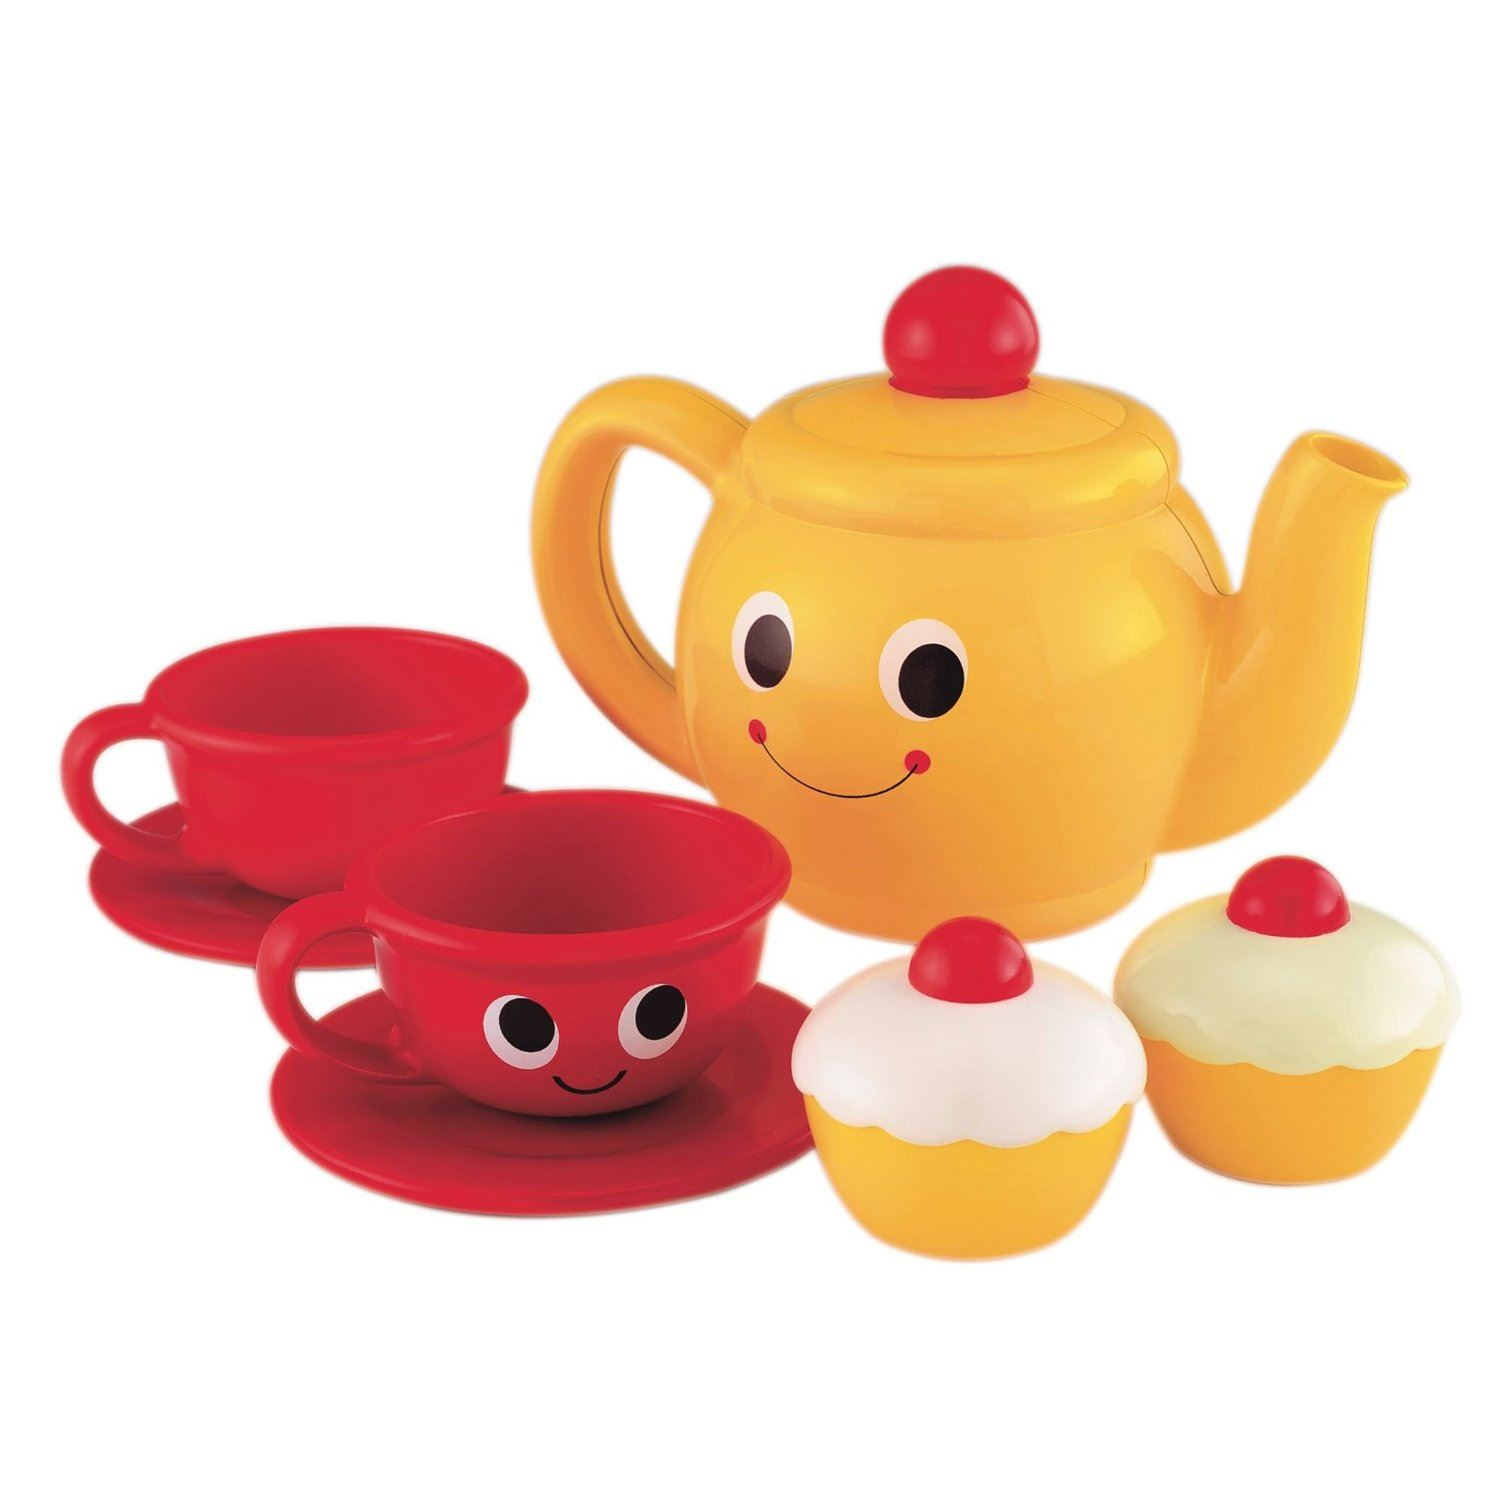 Toy Tea Set : Elc my first tea set baby toddler pretend play toy ebay